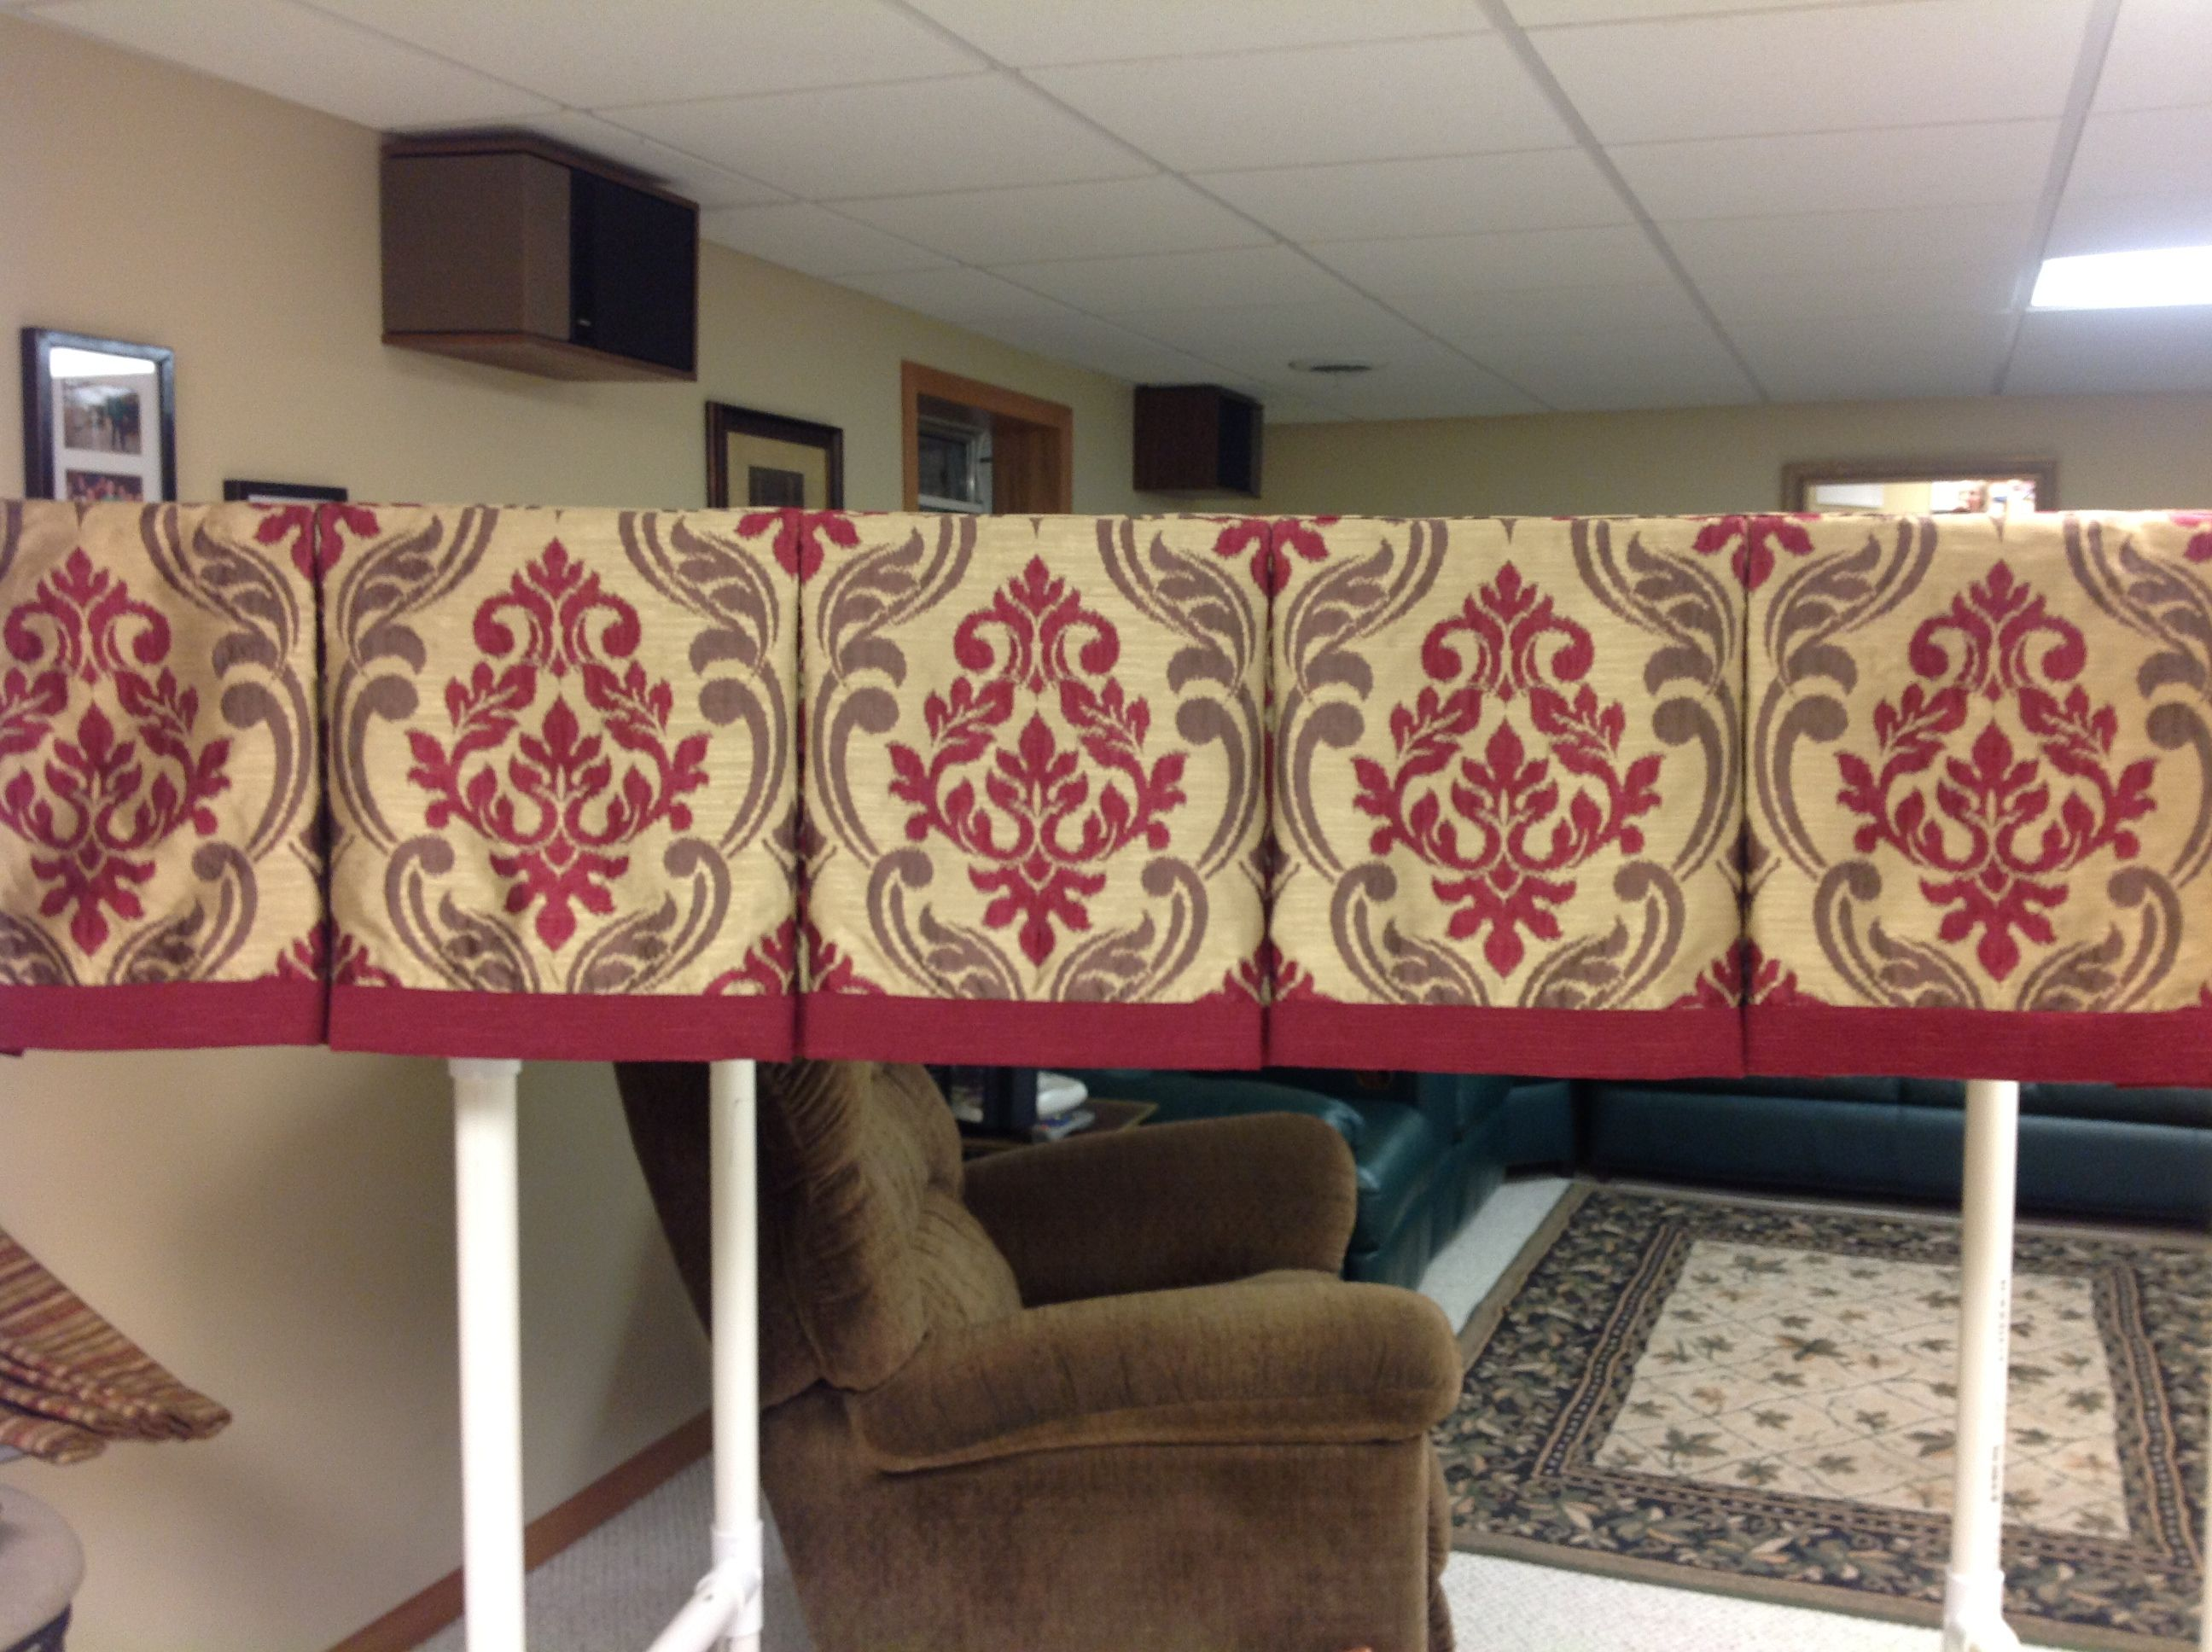 Box Pleated Valance With Centered Motif